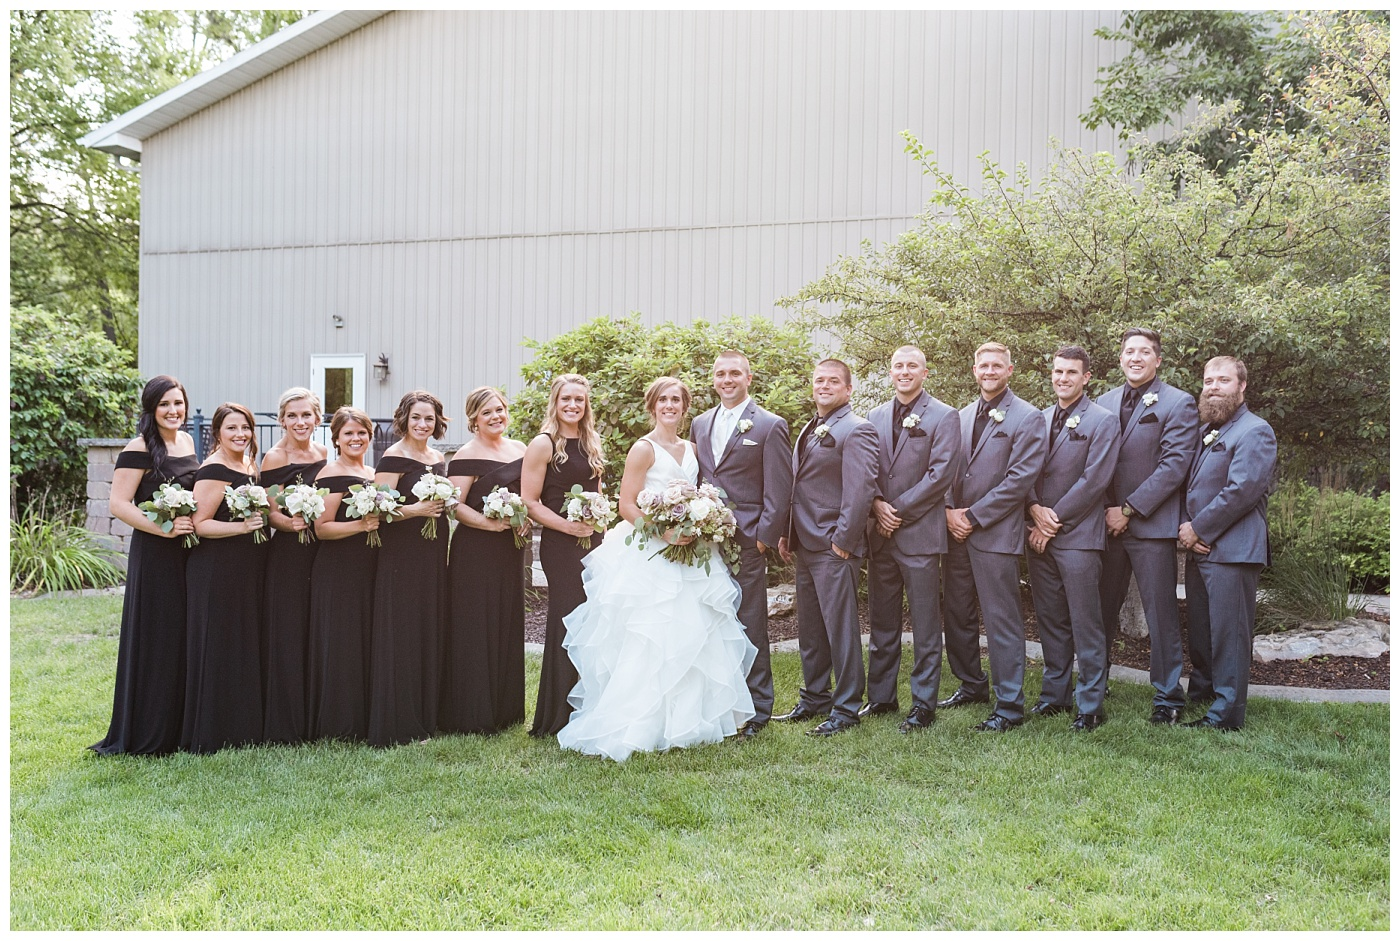 Stephanie Marie Photography Newman Catholic Center Ceremony Bella Sala Reception Tiffin Iowa City Wedding Photographer Chelsey Justin Meyers_0028-1.jpg